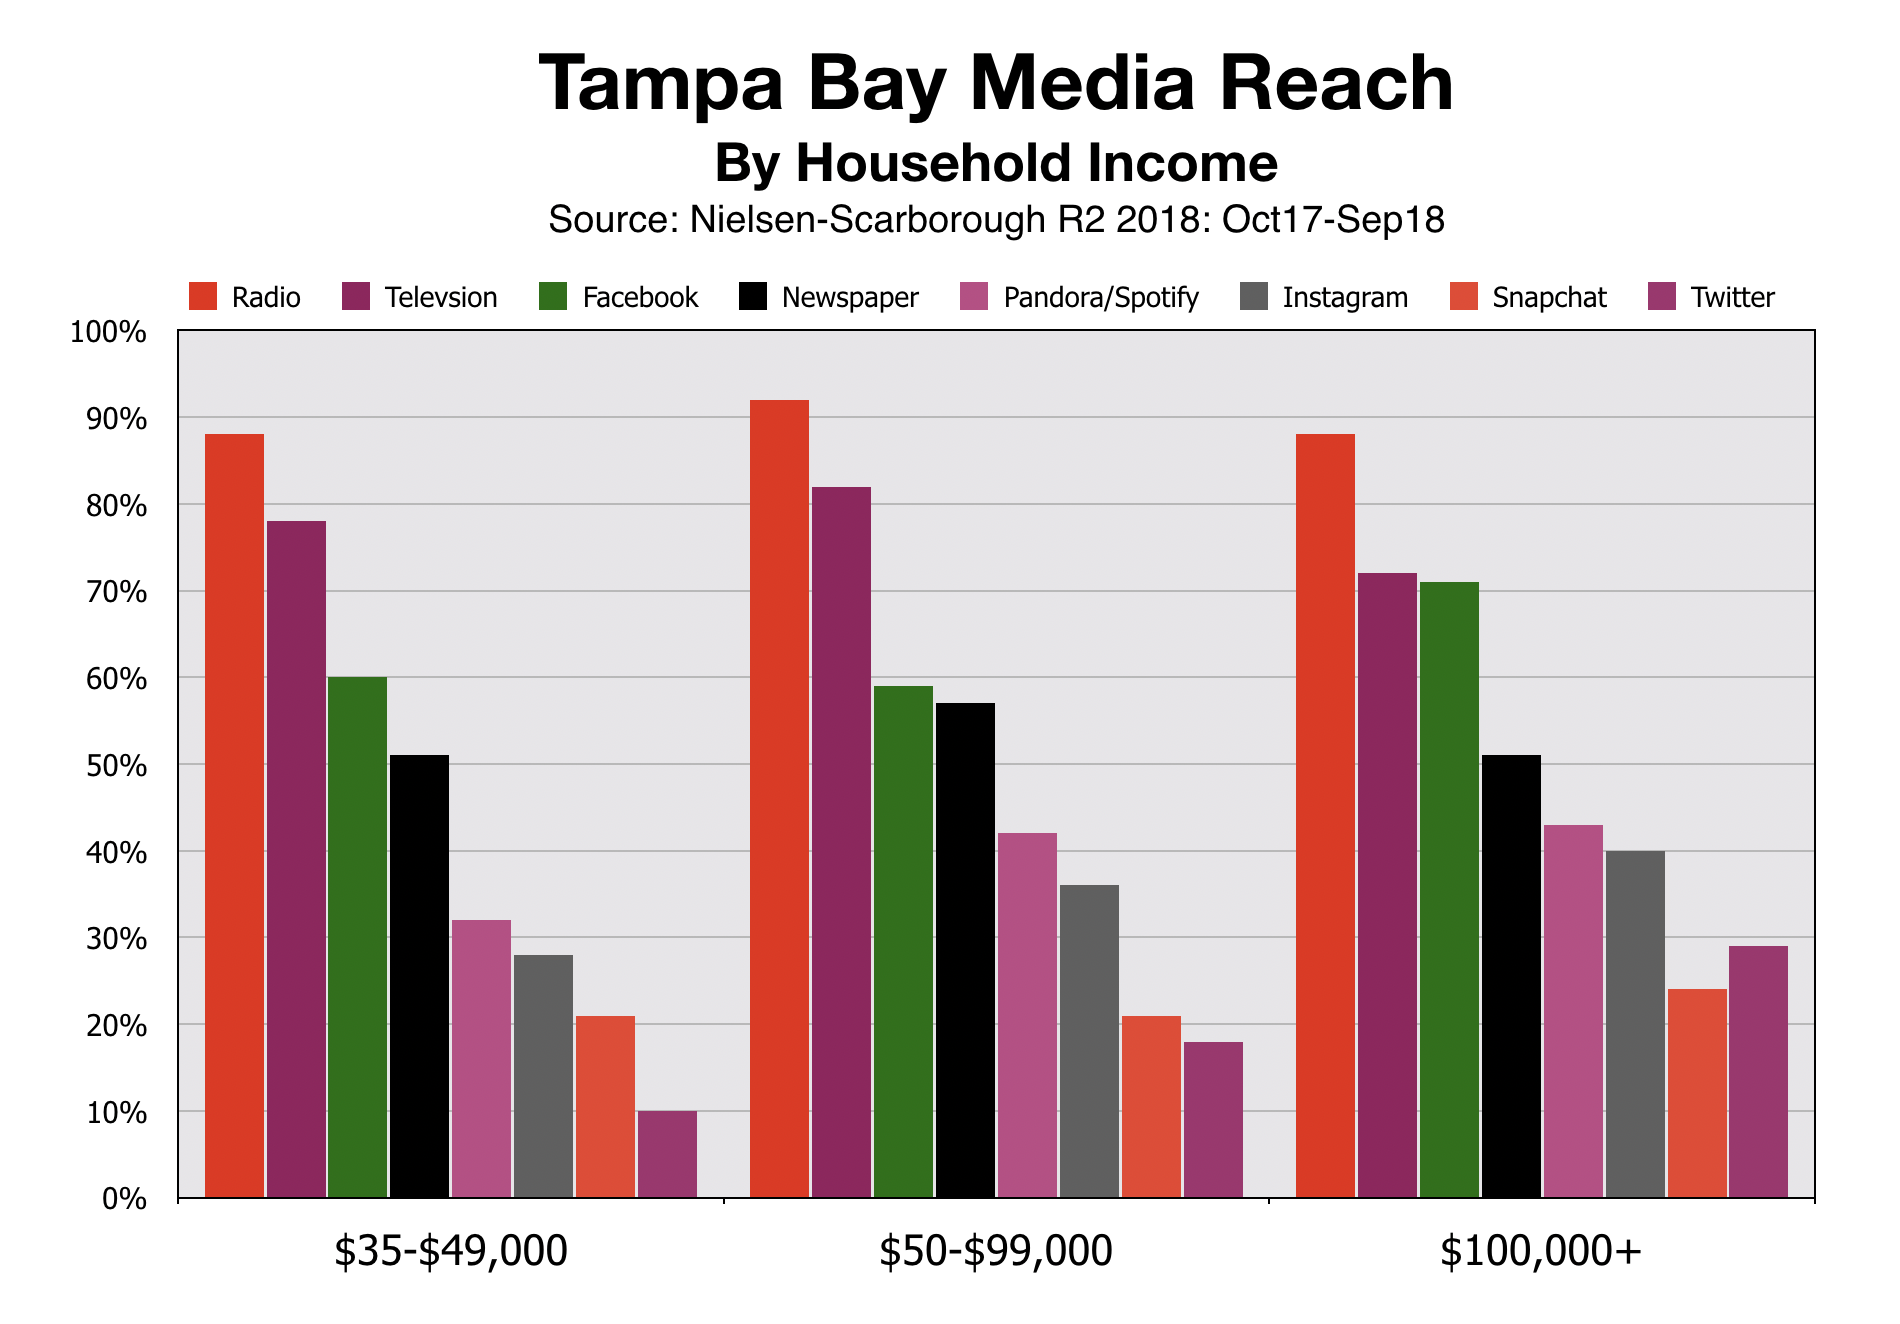 Tampa Bay Media Reach By Income